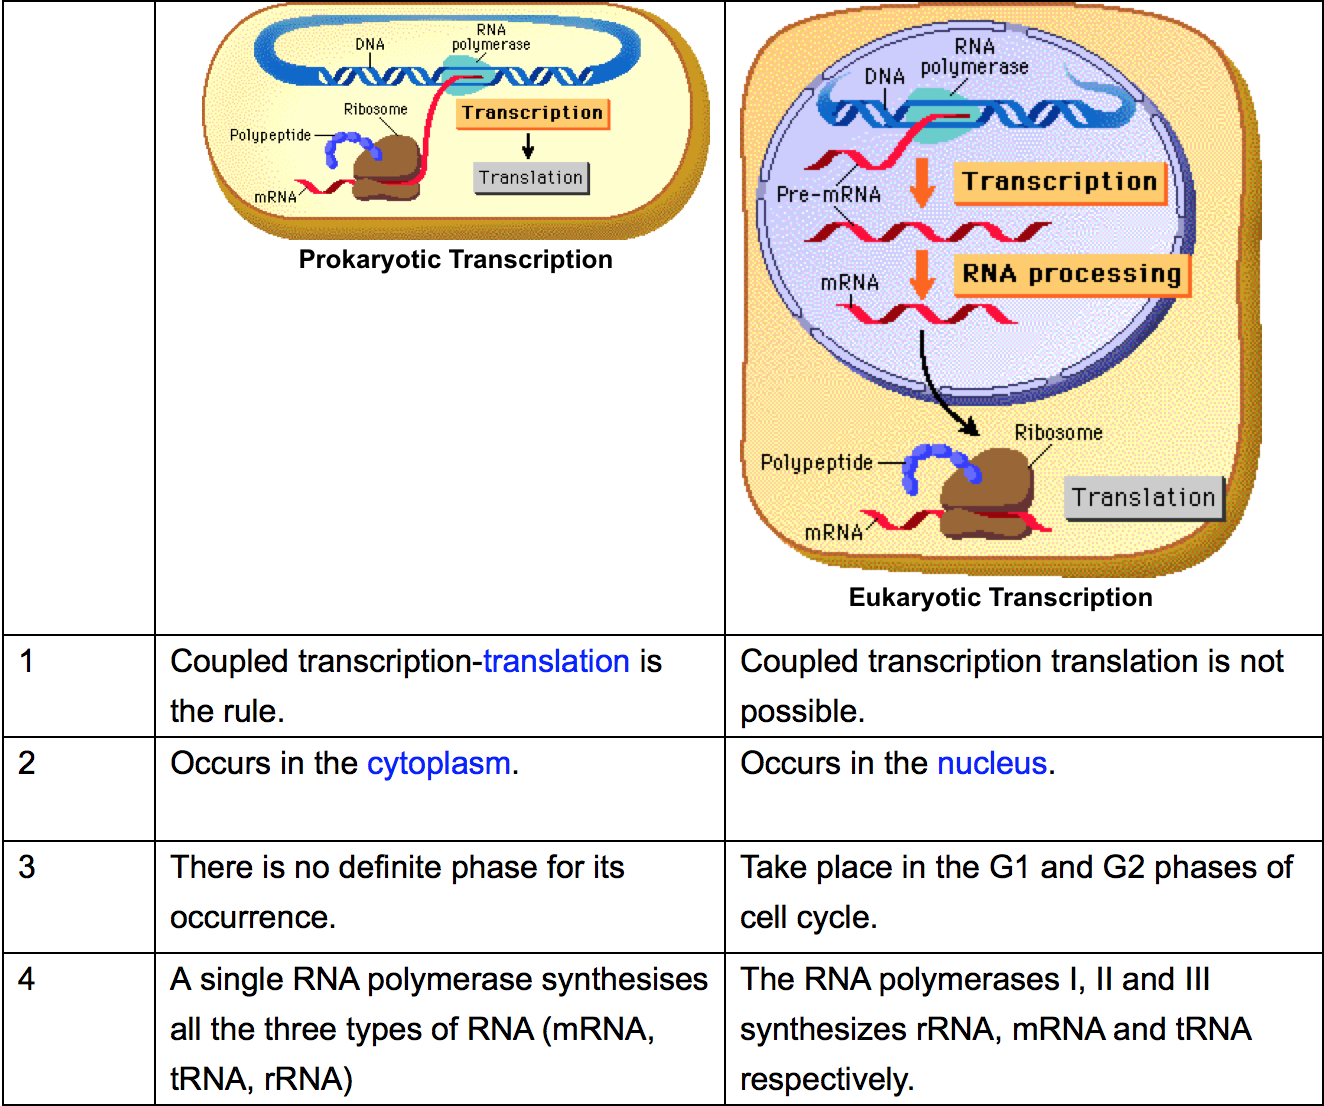 Biology Review Transcription In Eukaryotes And Prokaryotes